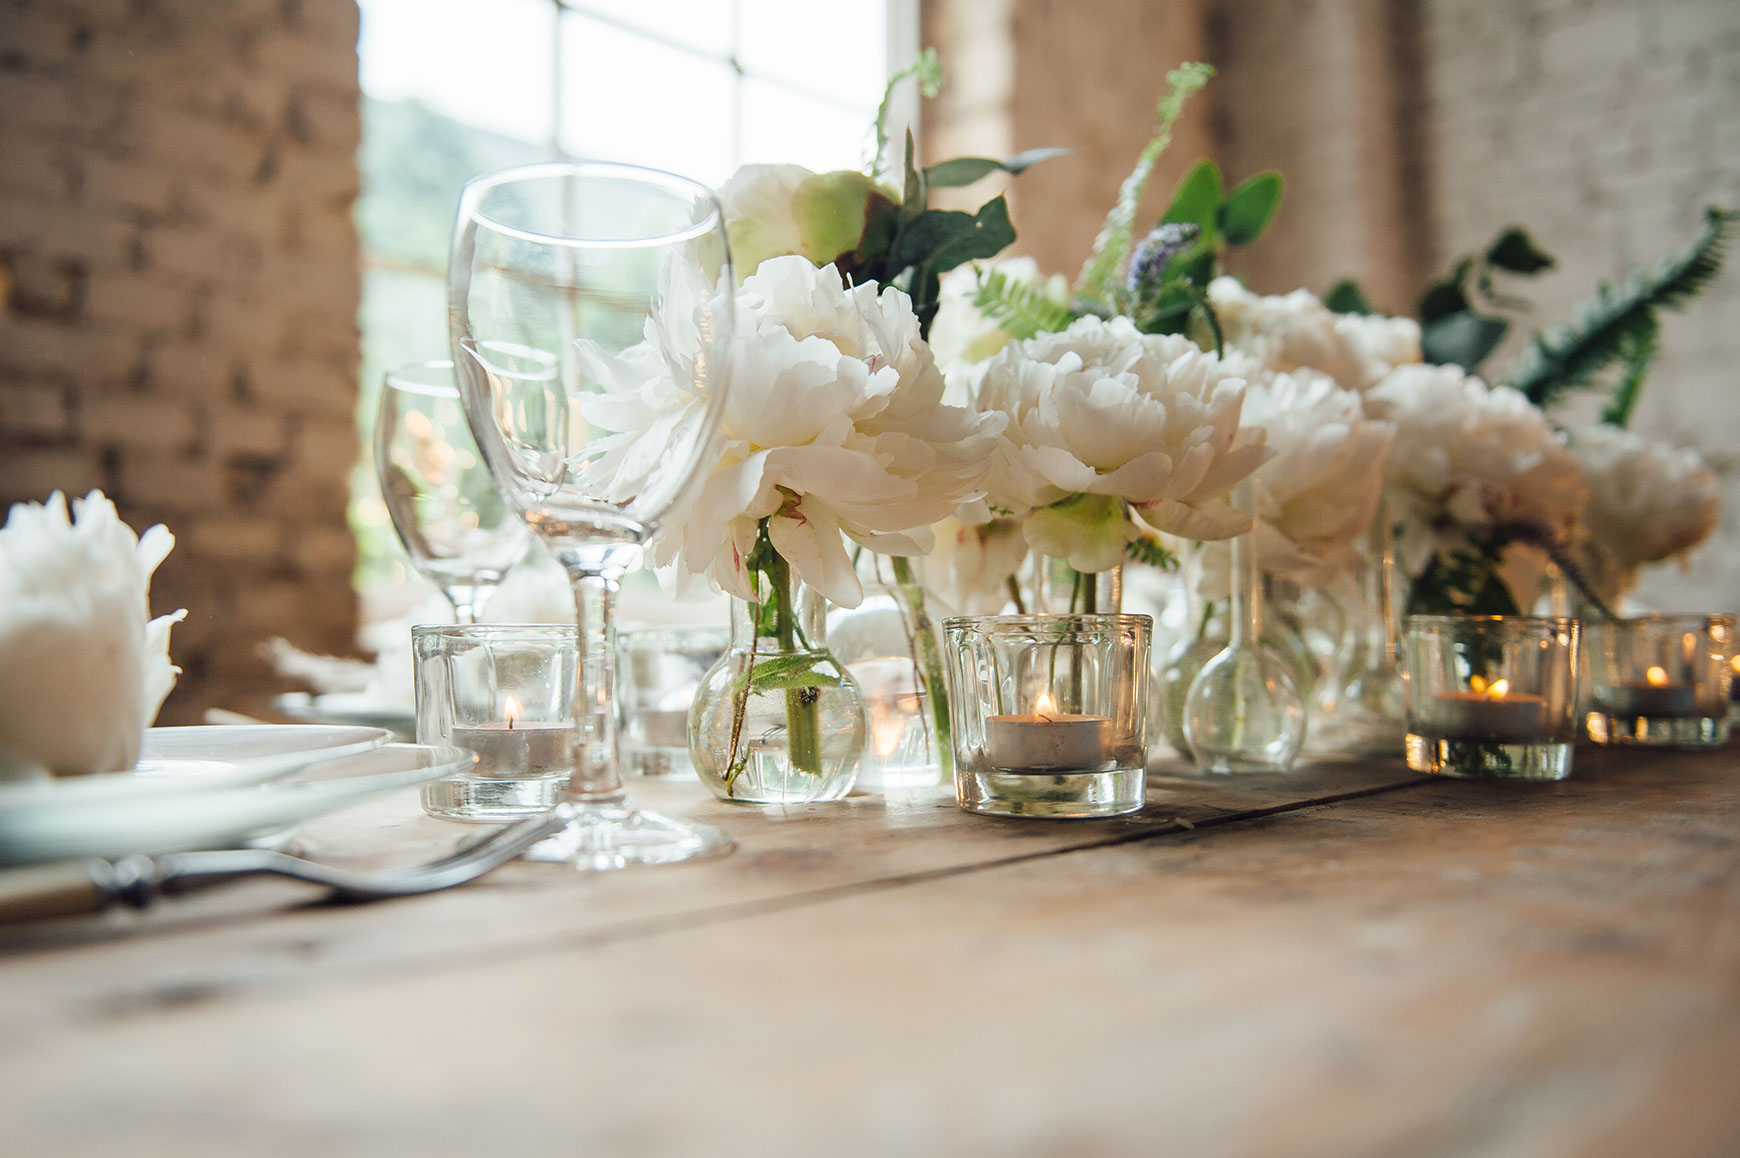 luxury wedding details fresh flowers and candles